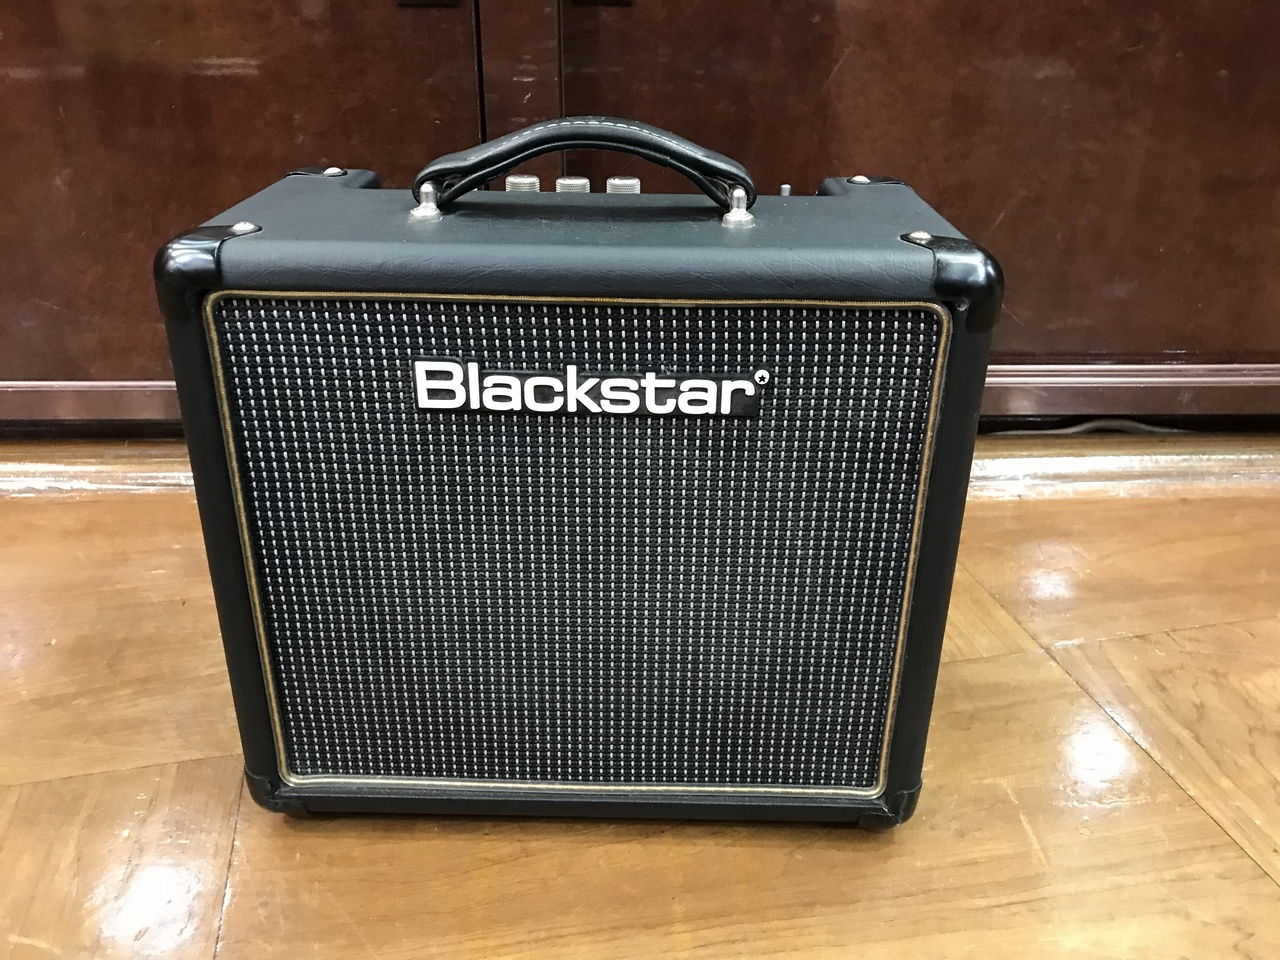 Blackstar HT-1R [used article] [with a power cord]